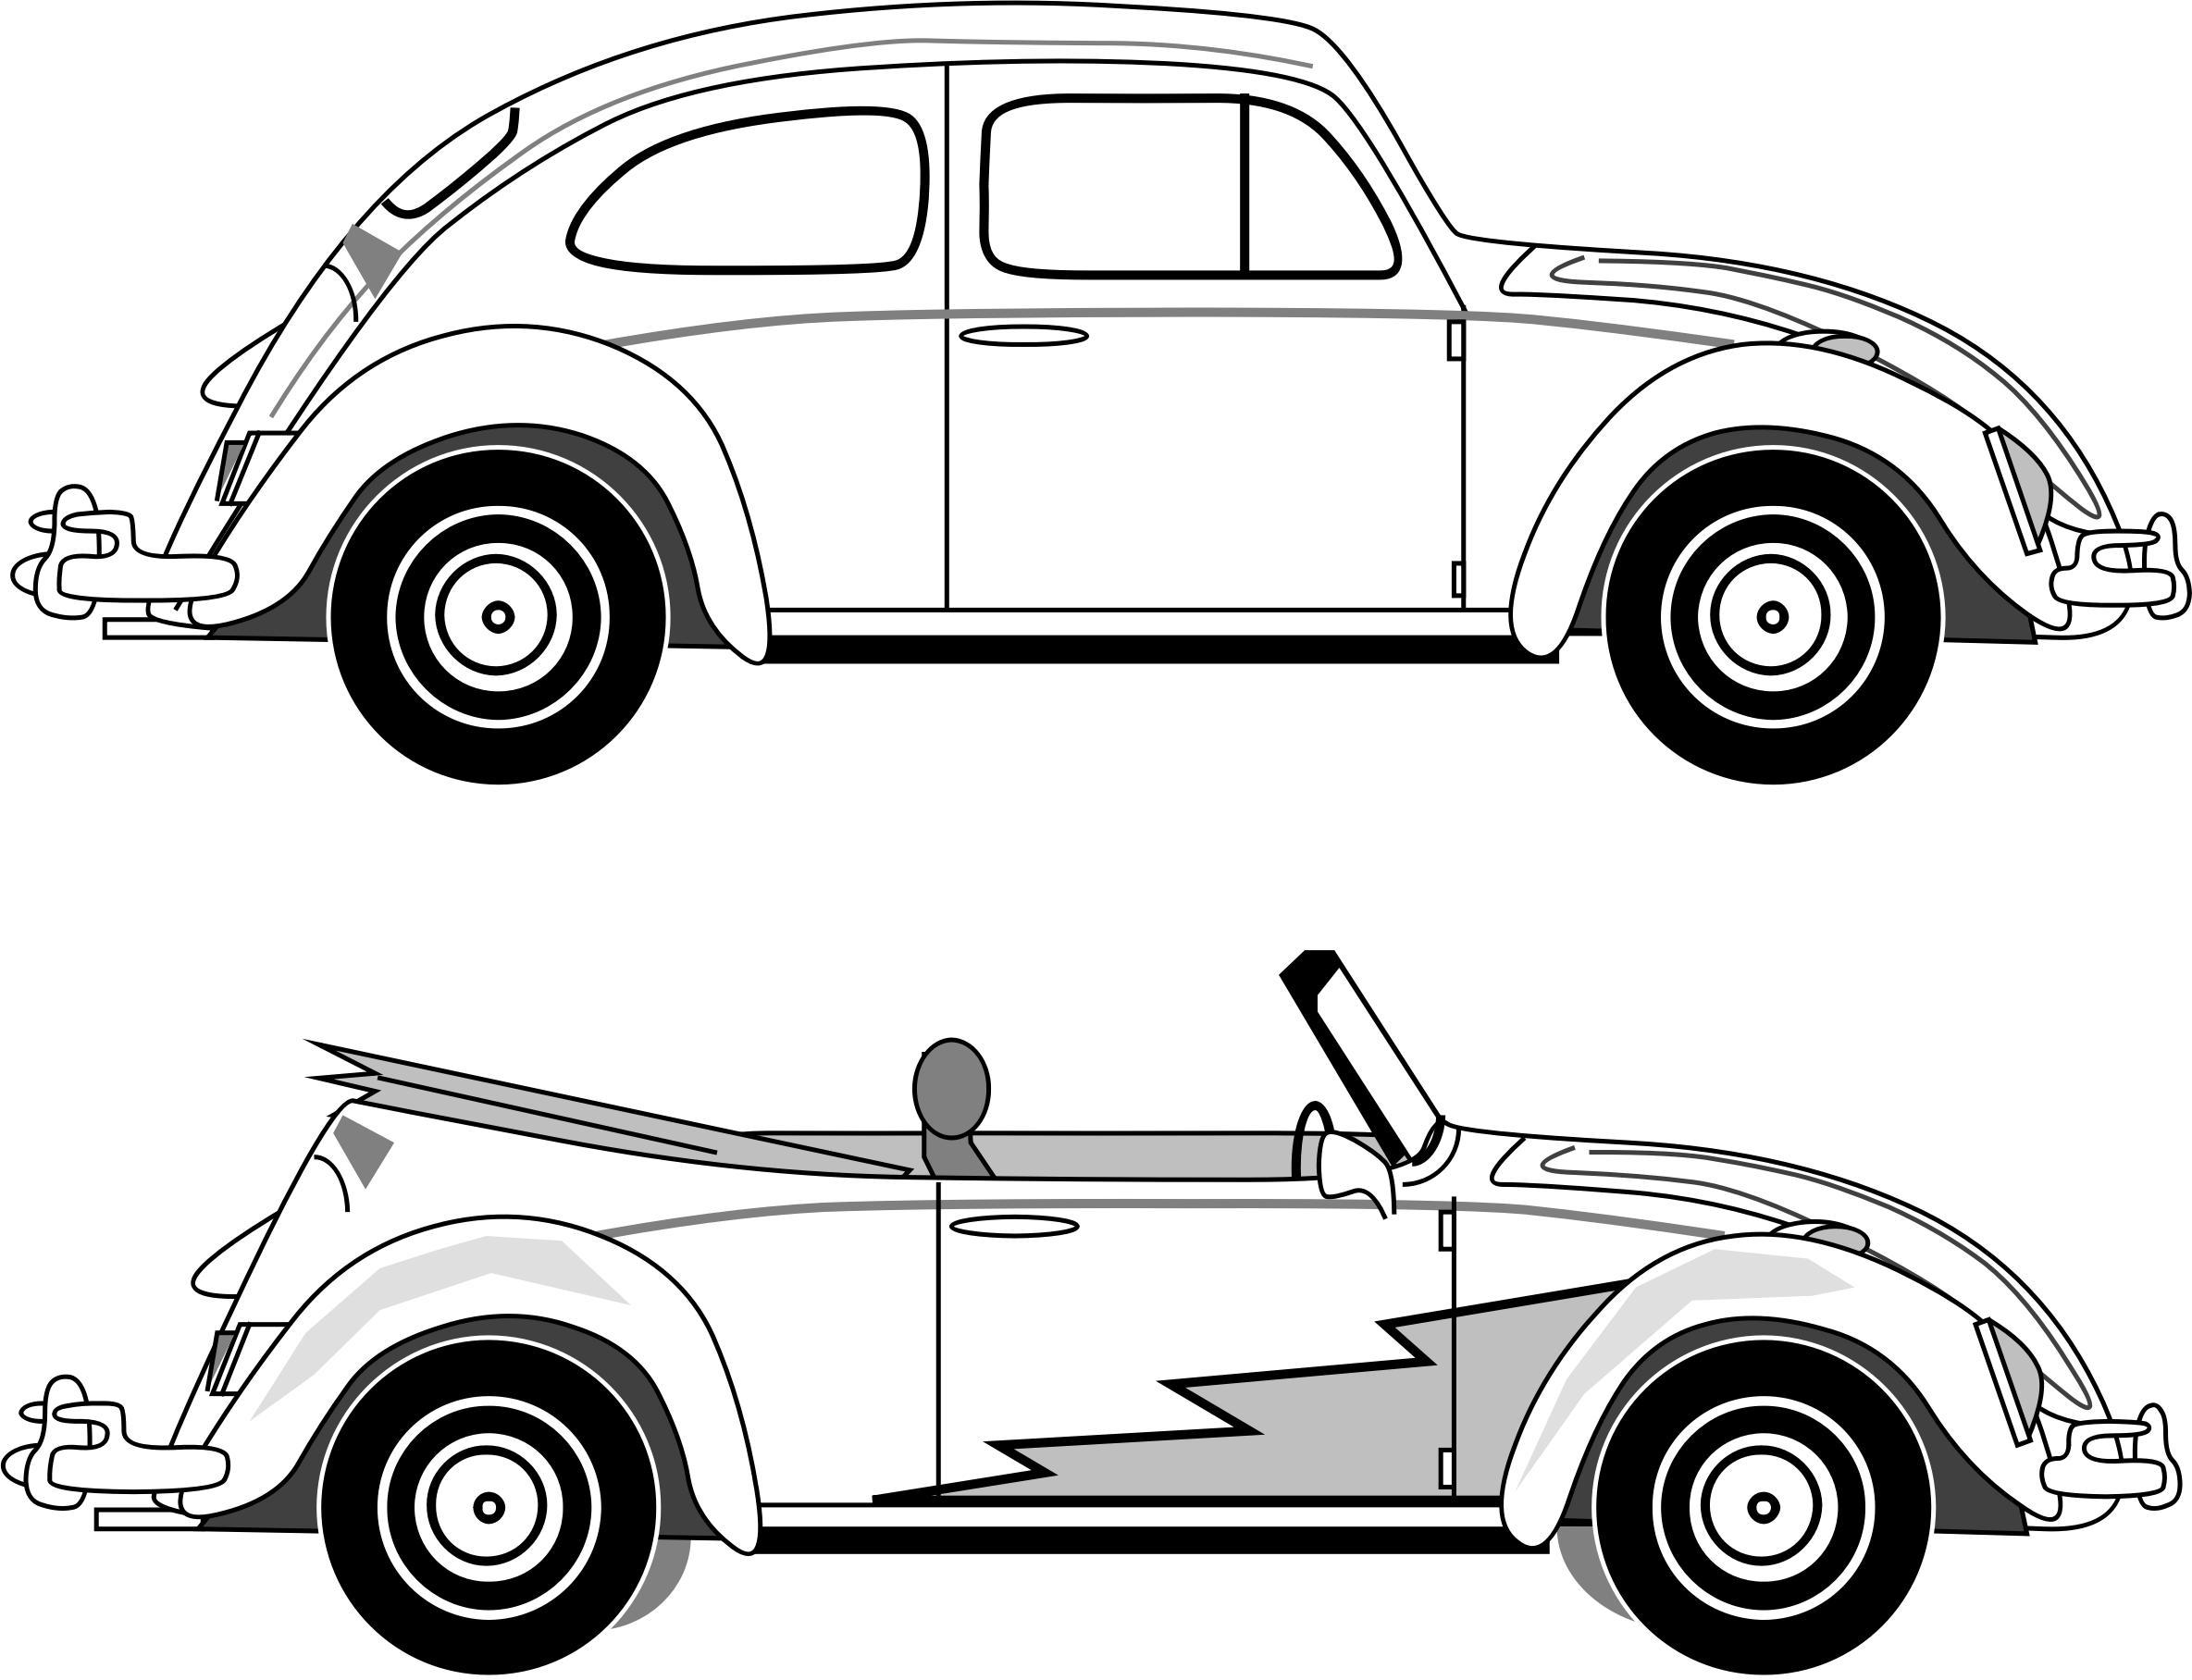 vw bug silhouette at getdrawings com free for personal use vw bug rh getdrawings com Yellow VW Bug Clip Art Yellow VW Bug Clip Art